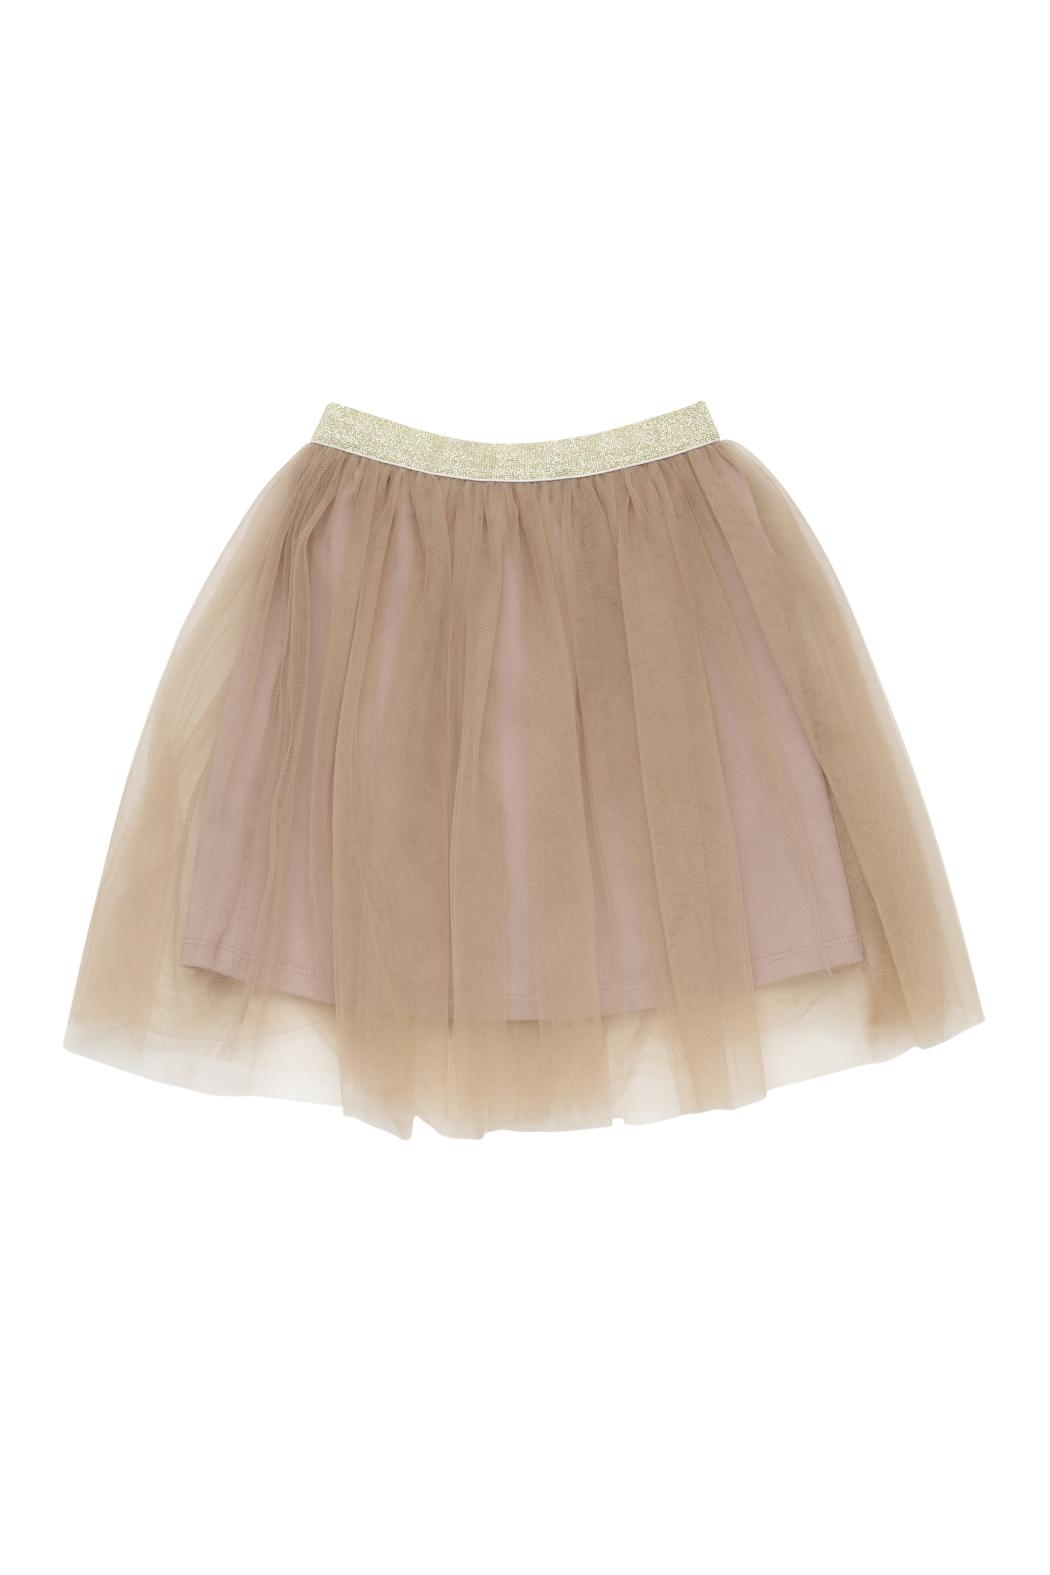 Rock Your Baby Dancer Skirt - Main Image